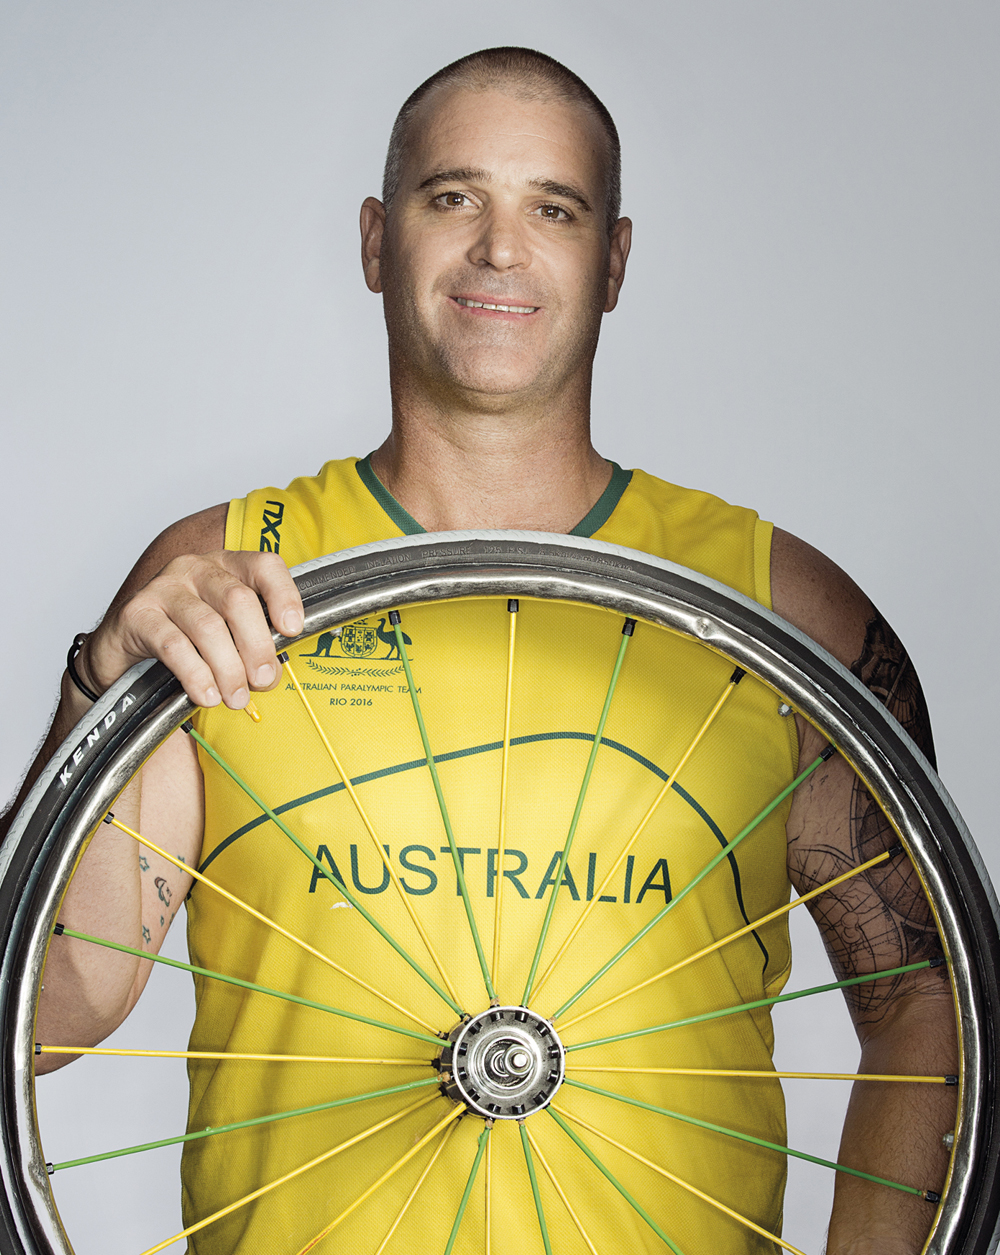 Portrait of Brad Ness holding a wheel